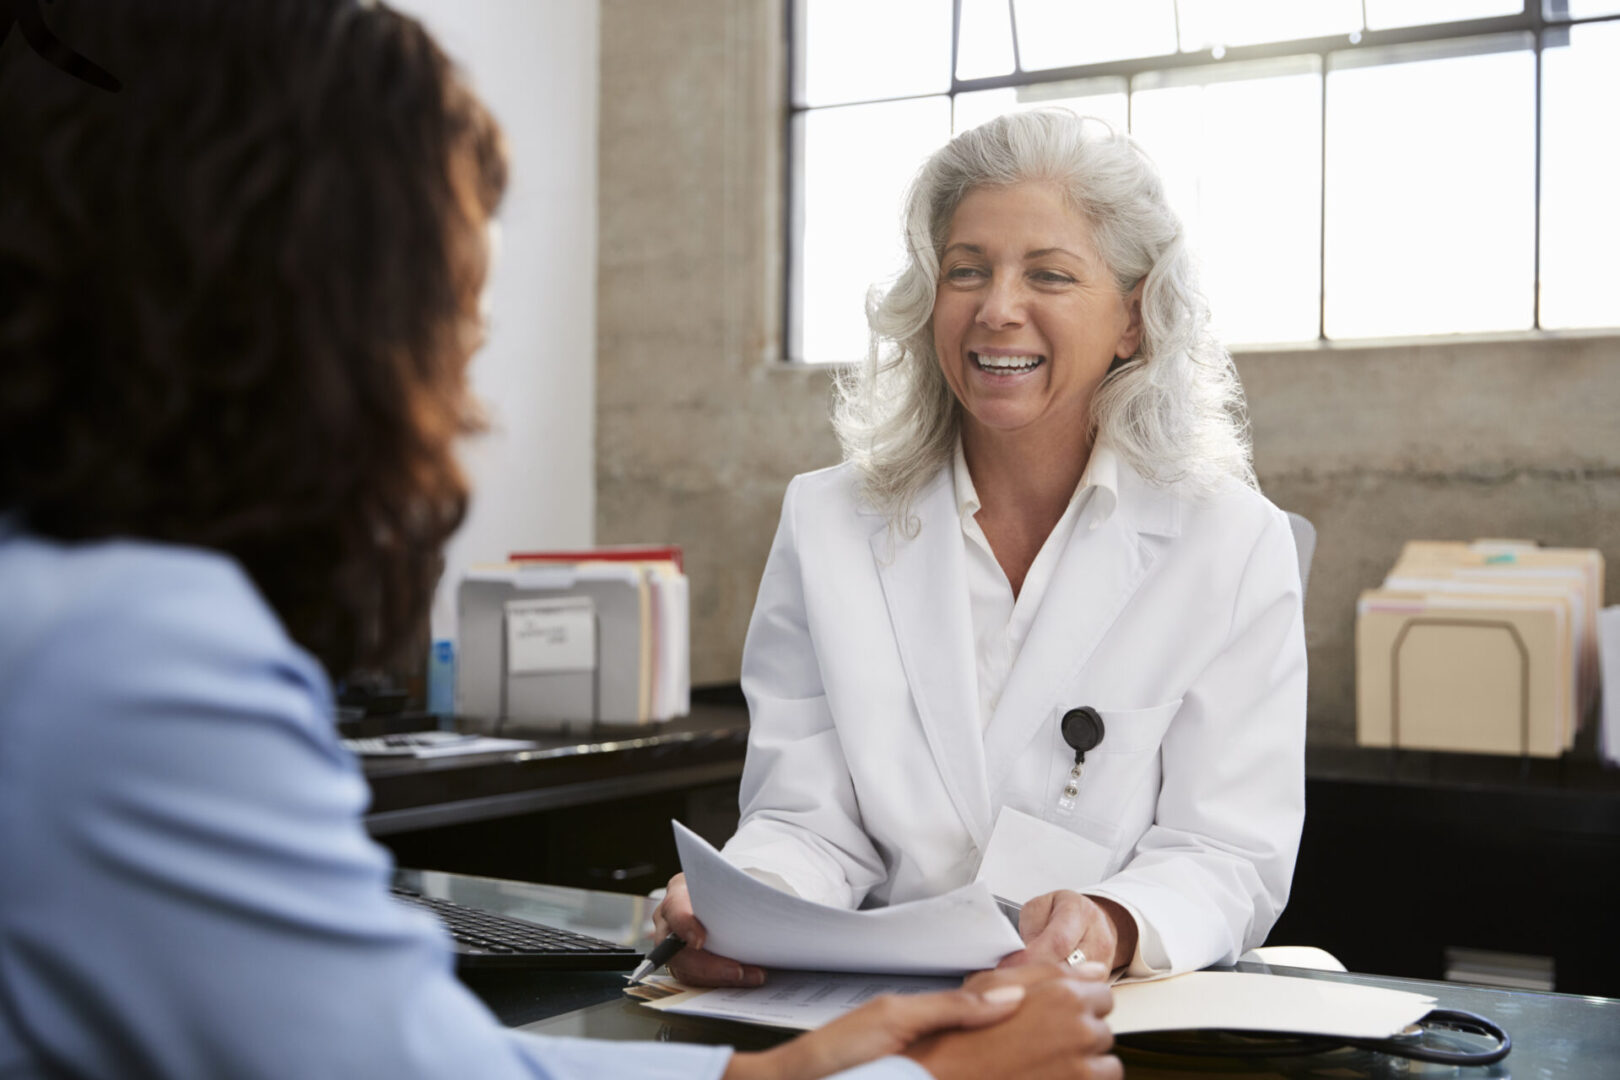 Smiling female doctor in consultation with patient in office